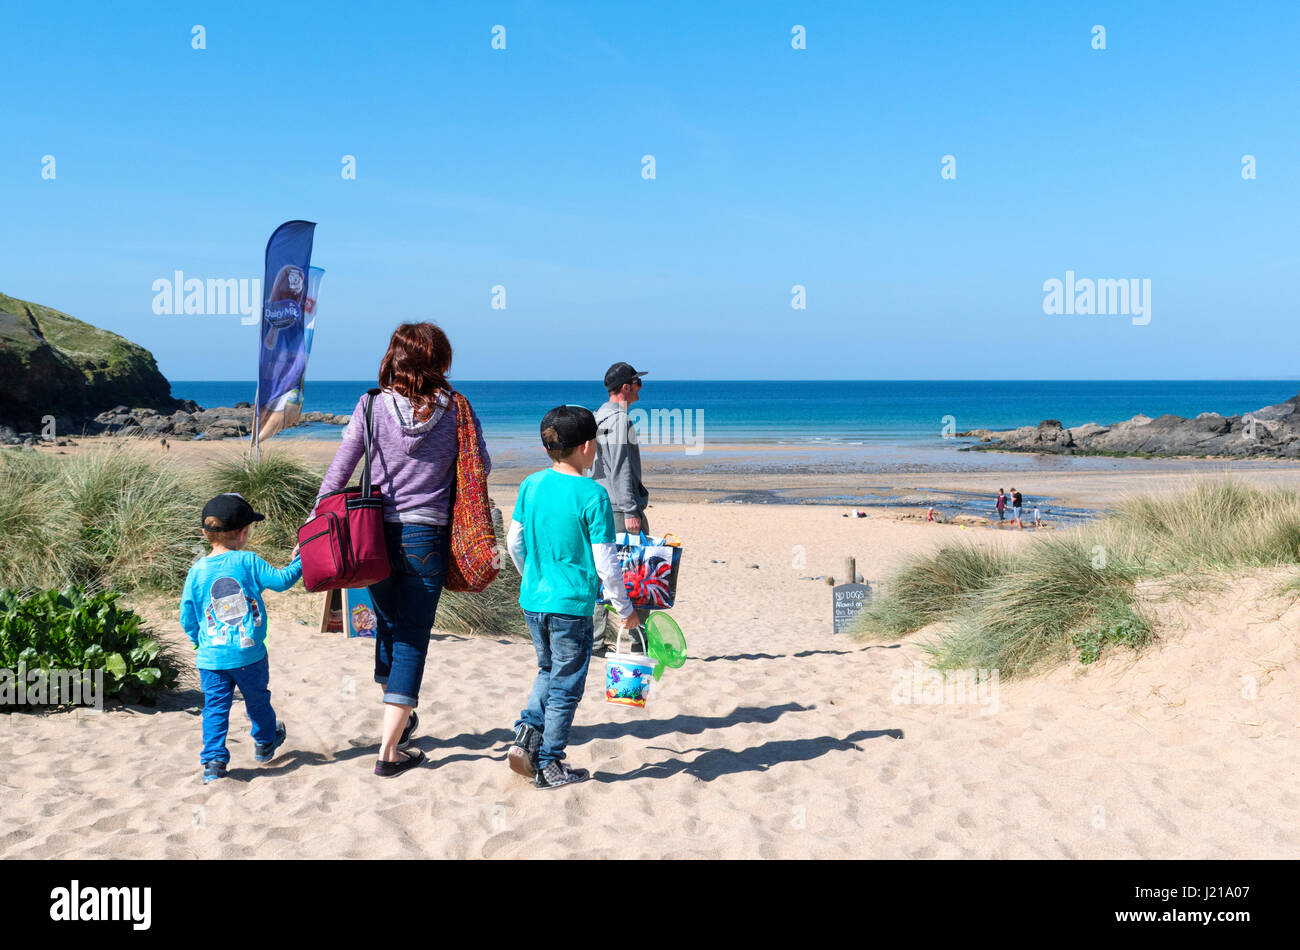 family on the beach at poldhu cove in cornwall, england, uk - Stock Image